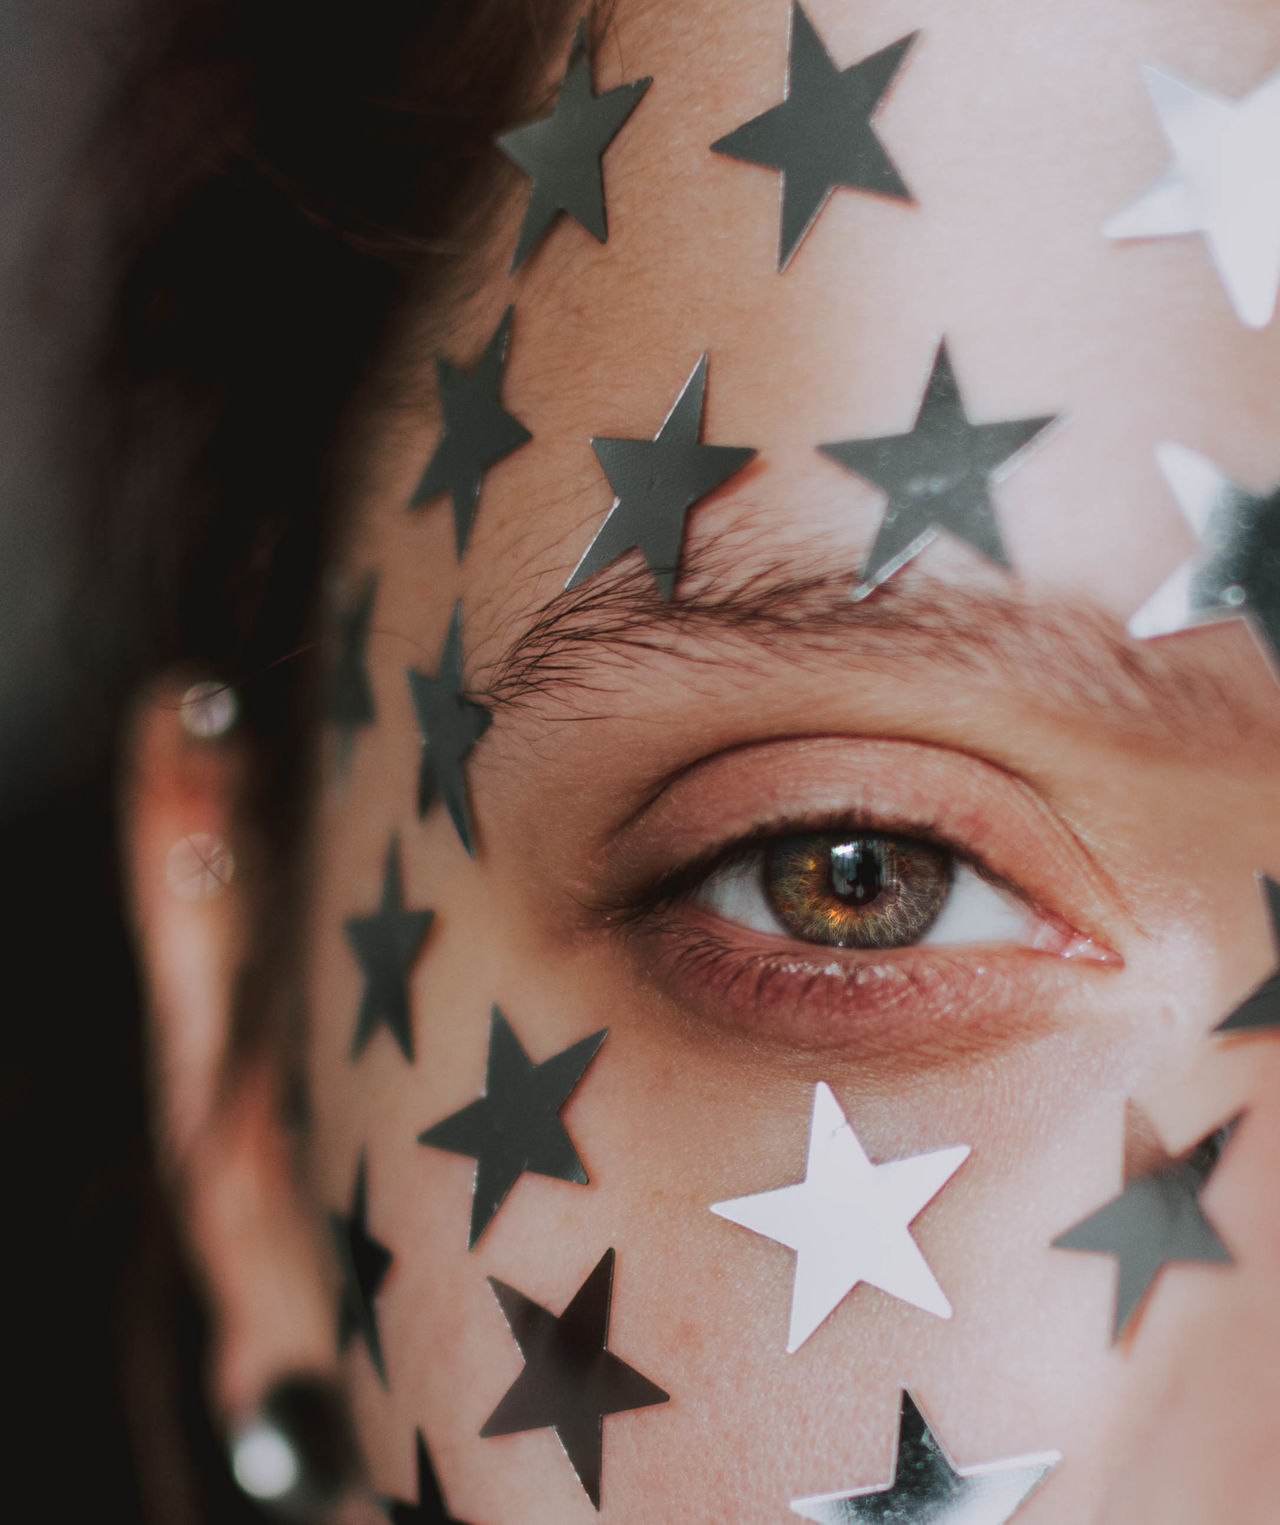 Close-up portrait of young woman with stars on face